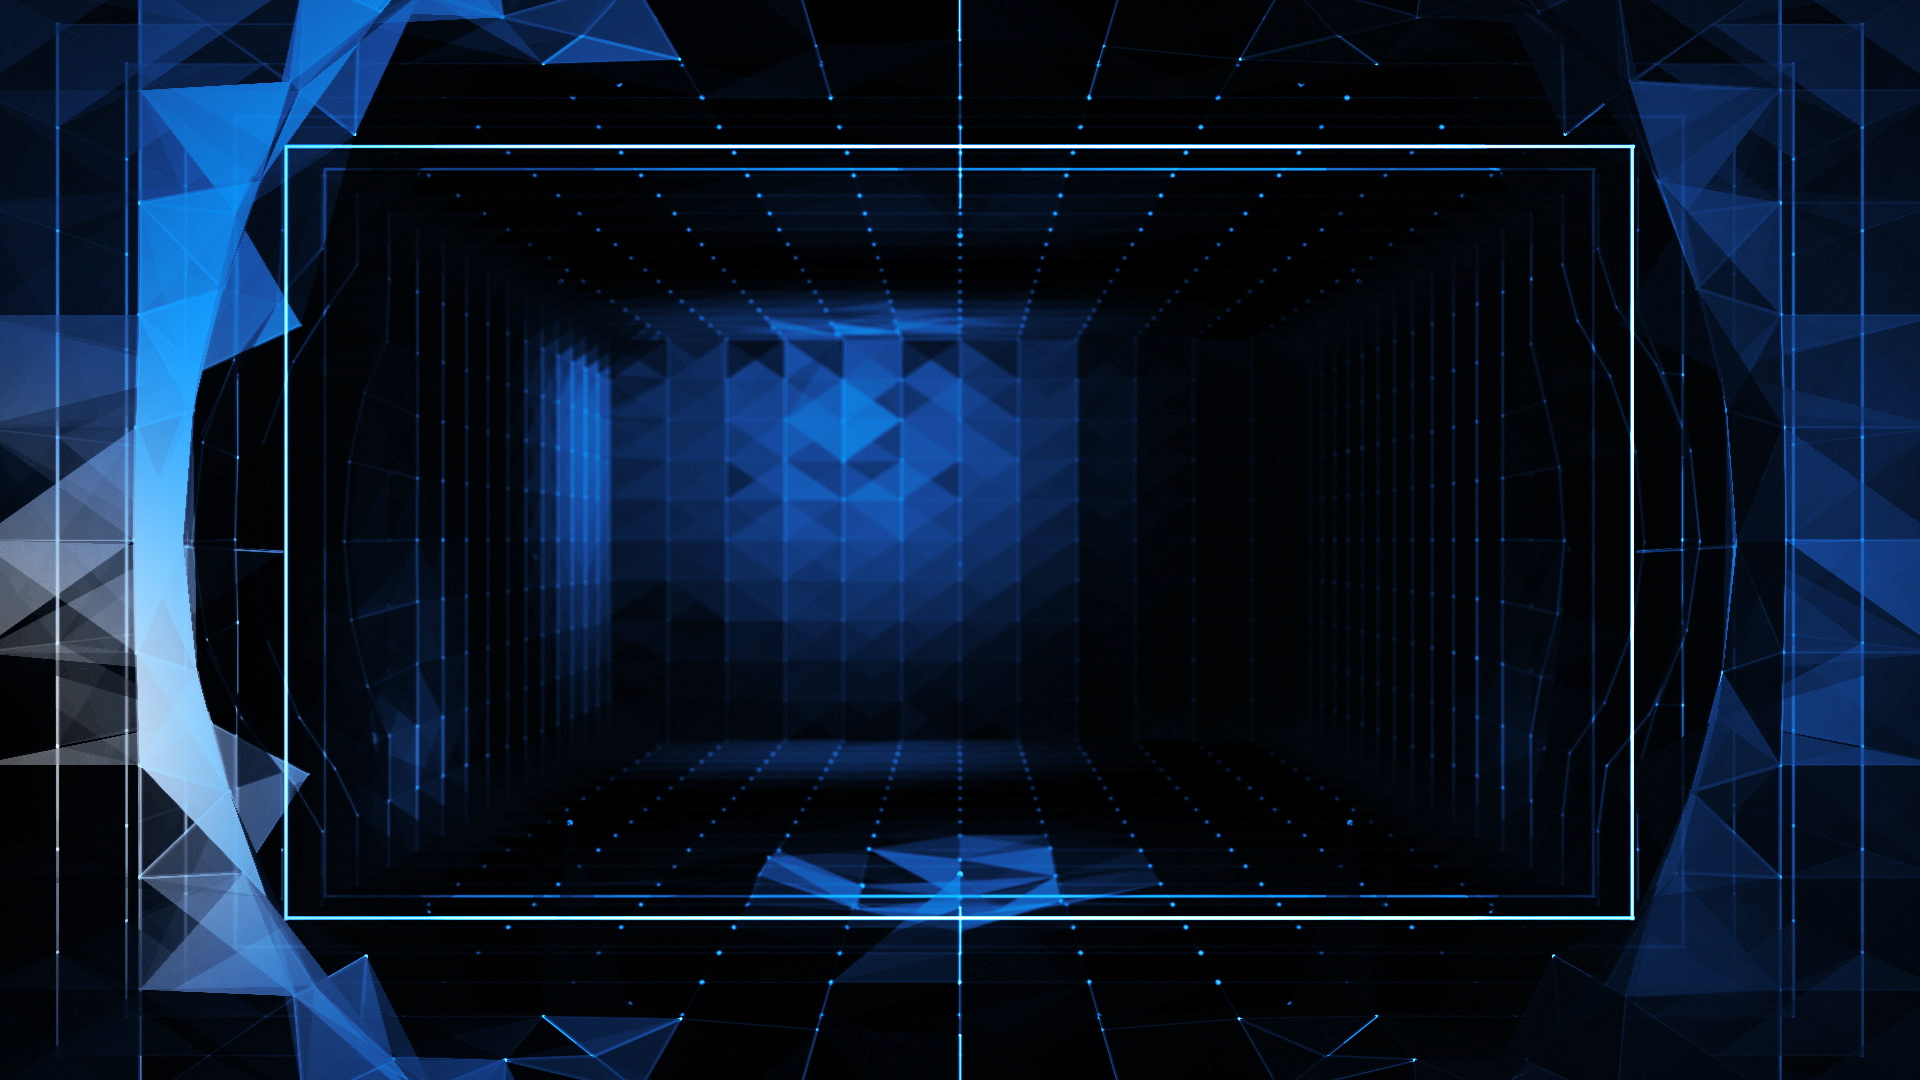 vj grid room ghosteam vj loops video templates